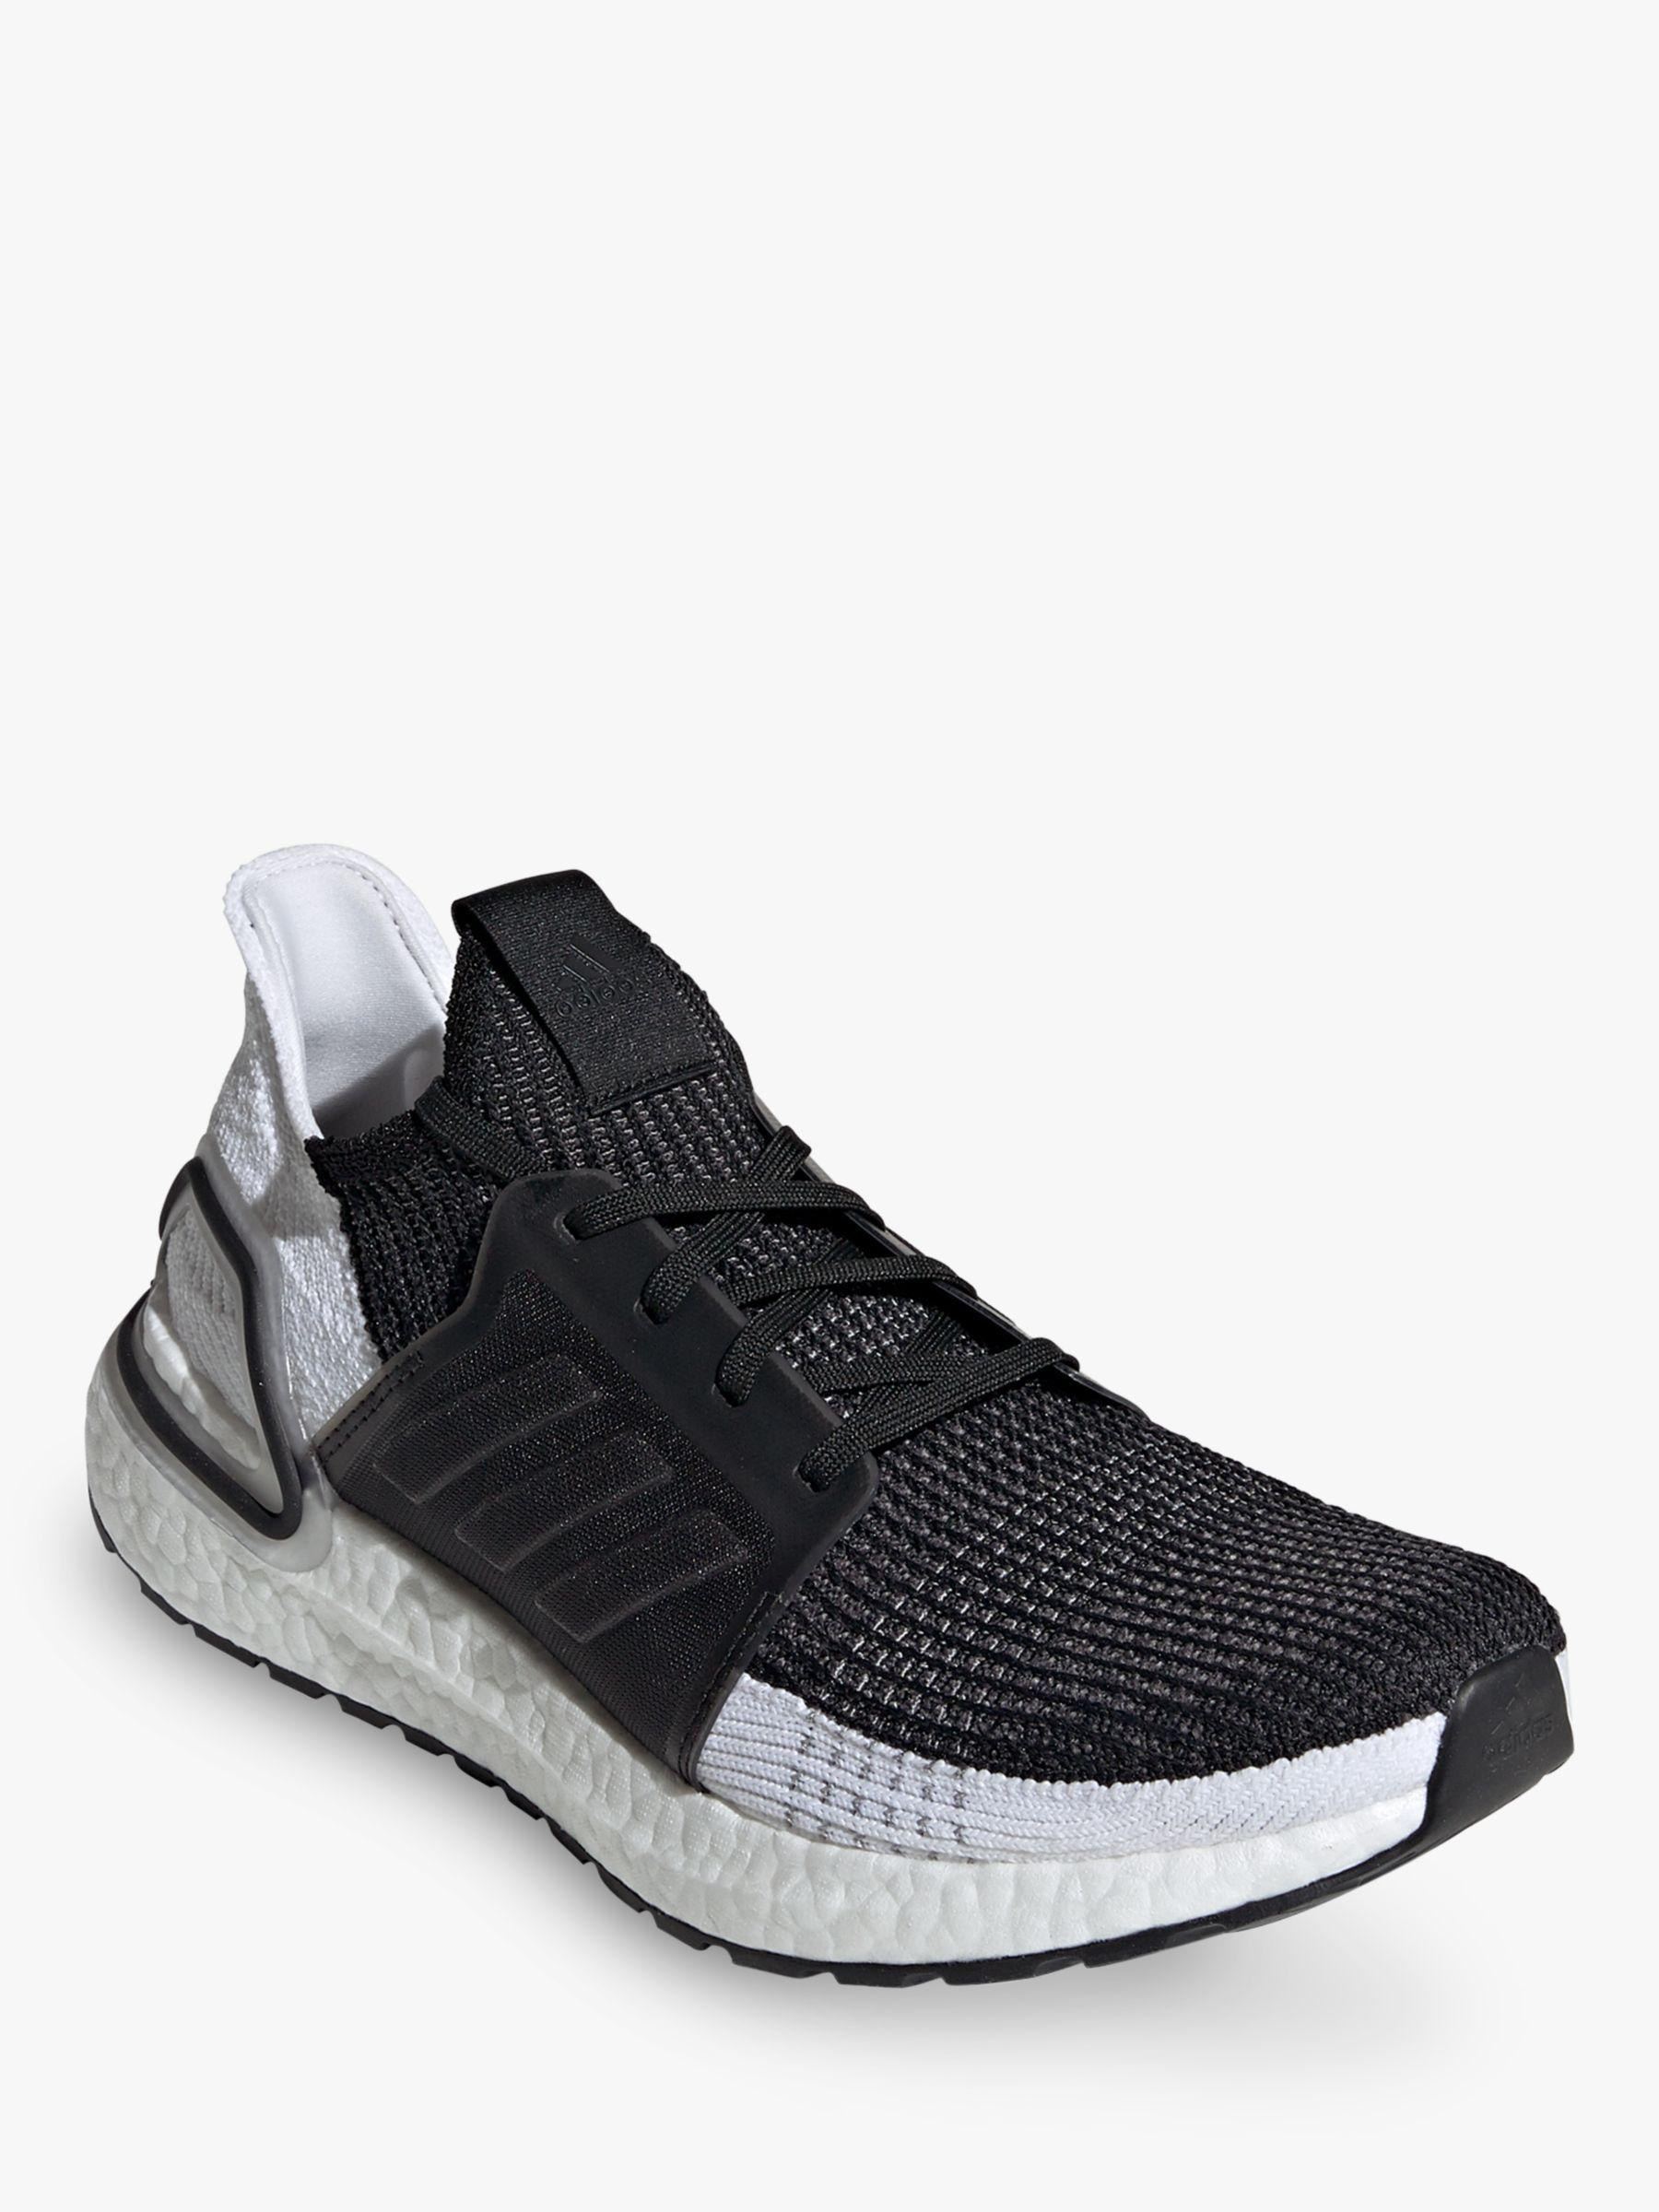 14460366ff396 adidas Ultraboost 19 Men s Running Shoes in Black for Men - Lyst